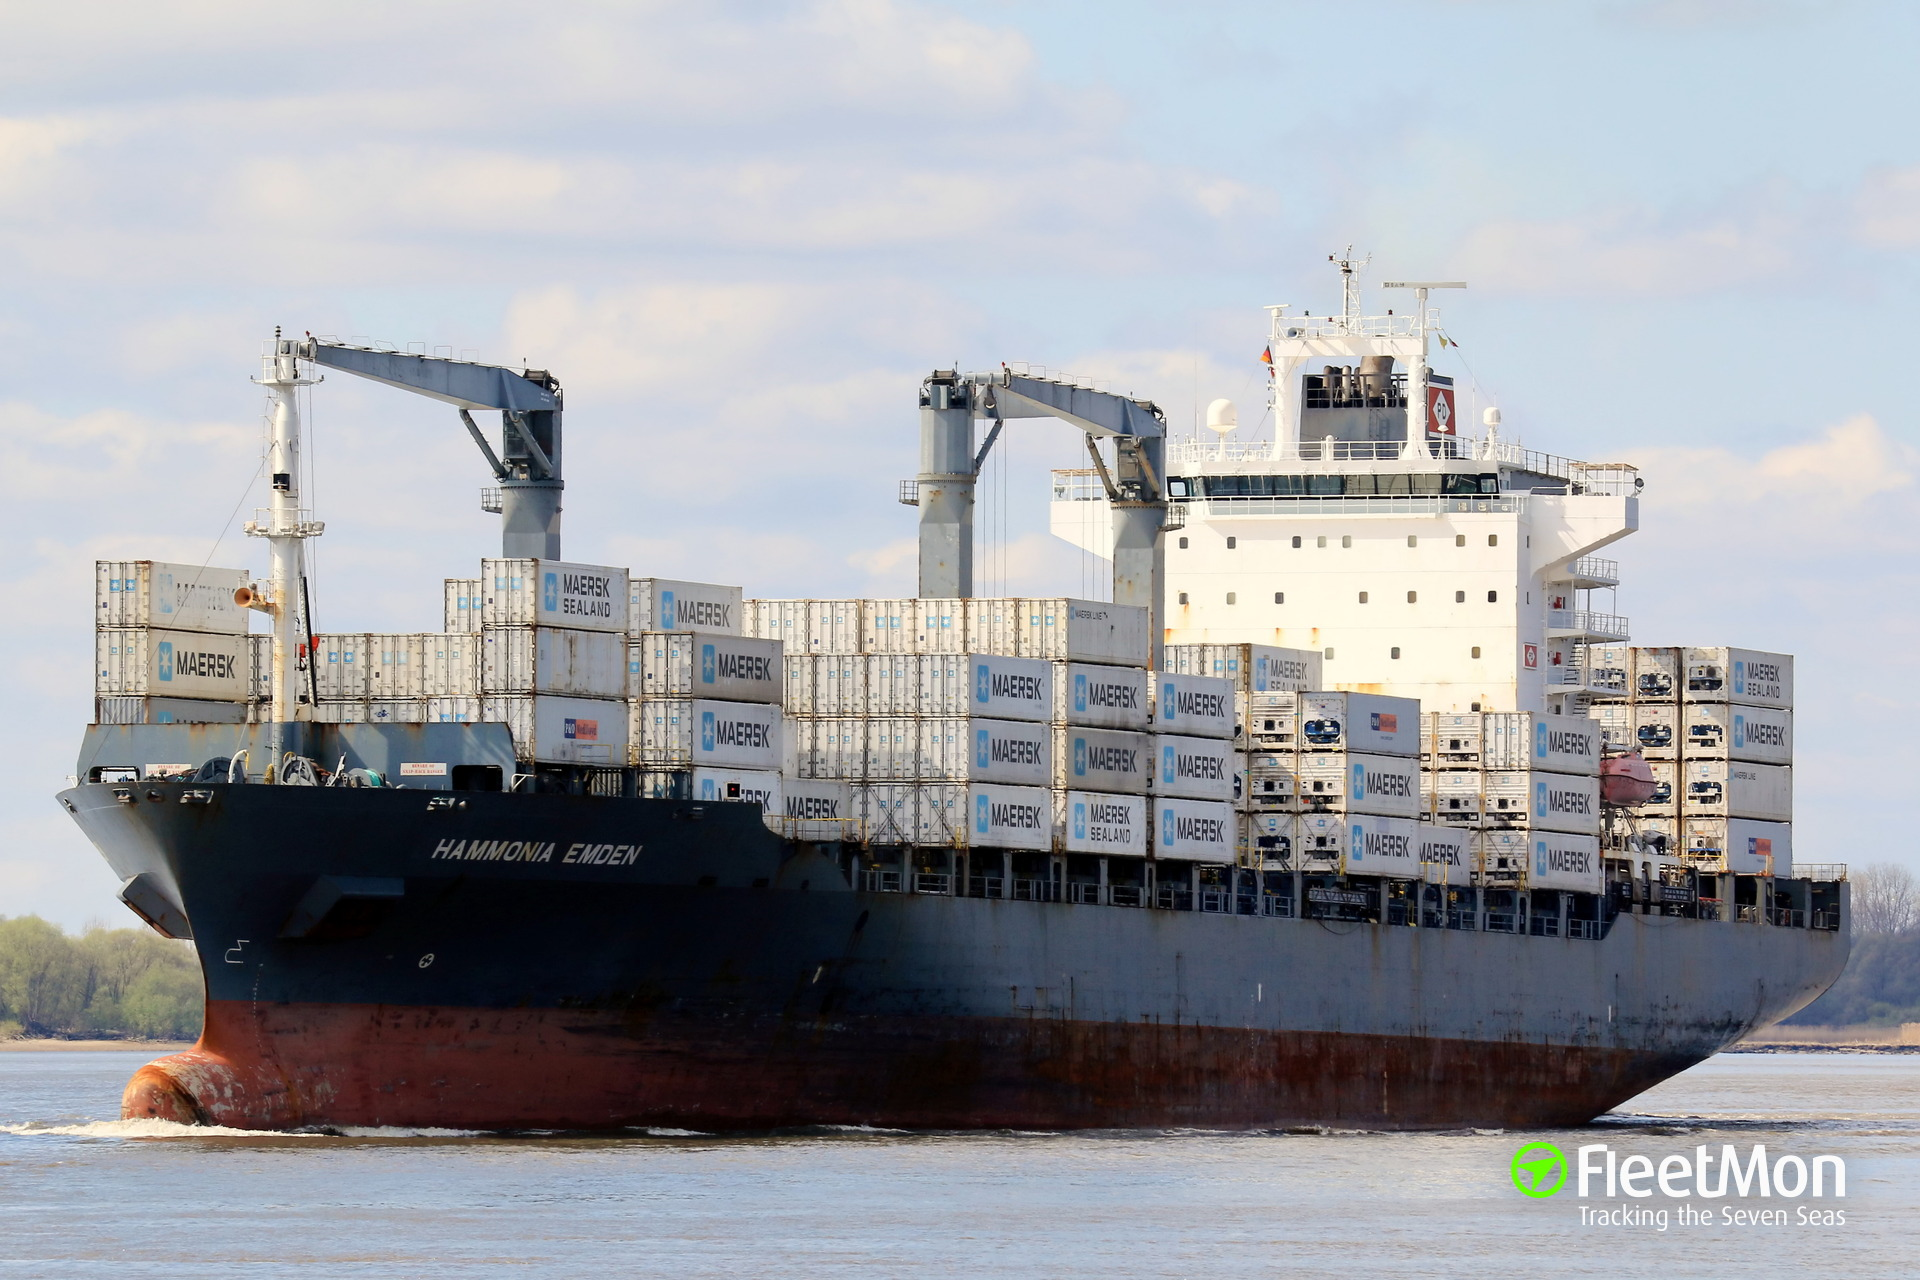 Cocaine found in container on board of HAMMONIA EMDEN, Colombia